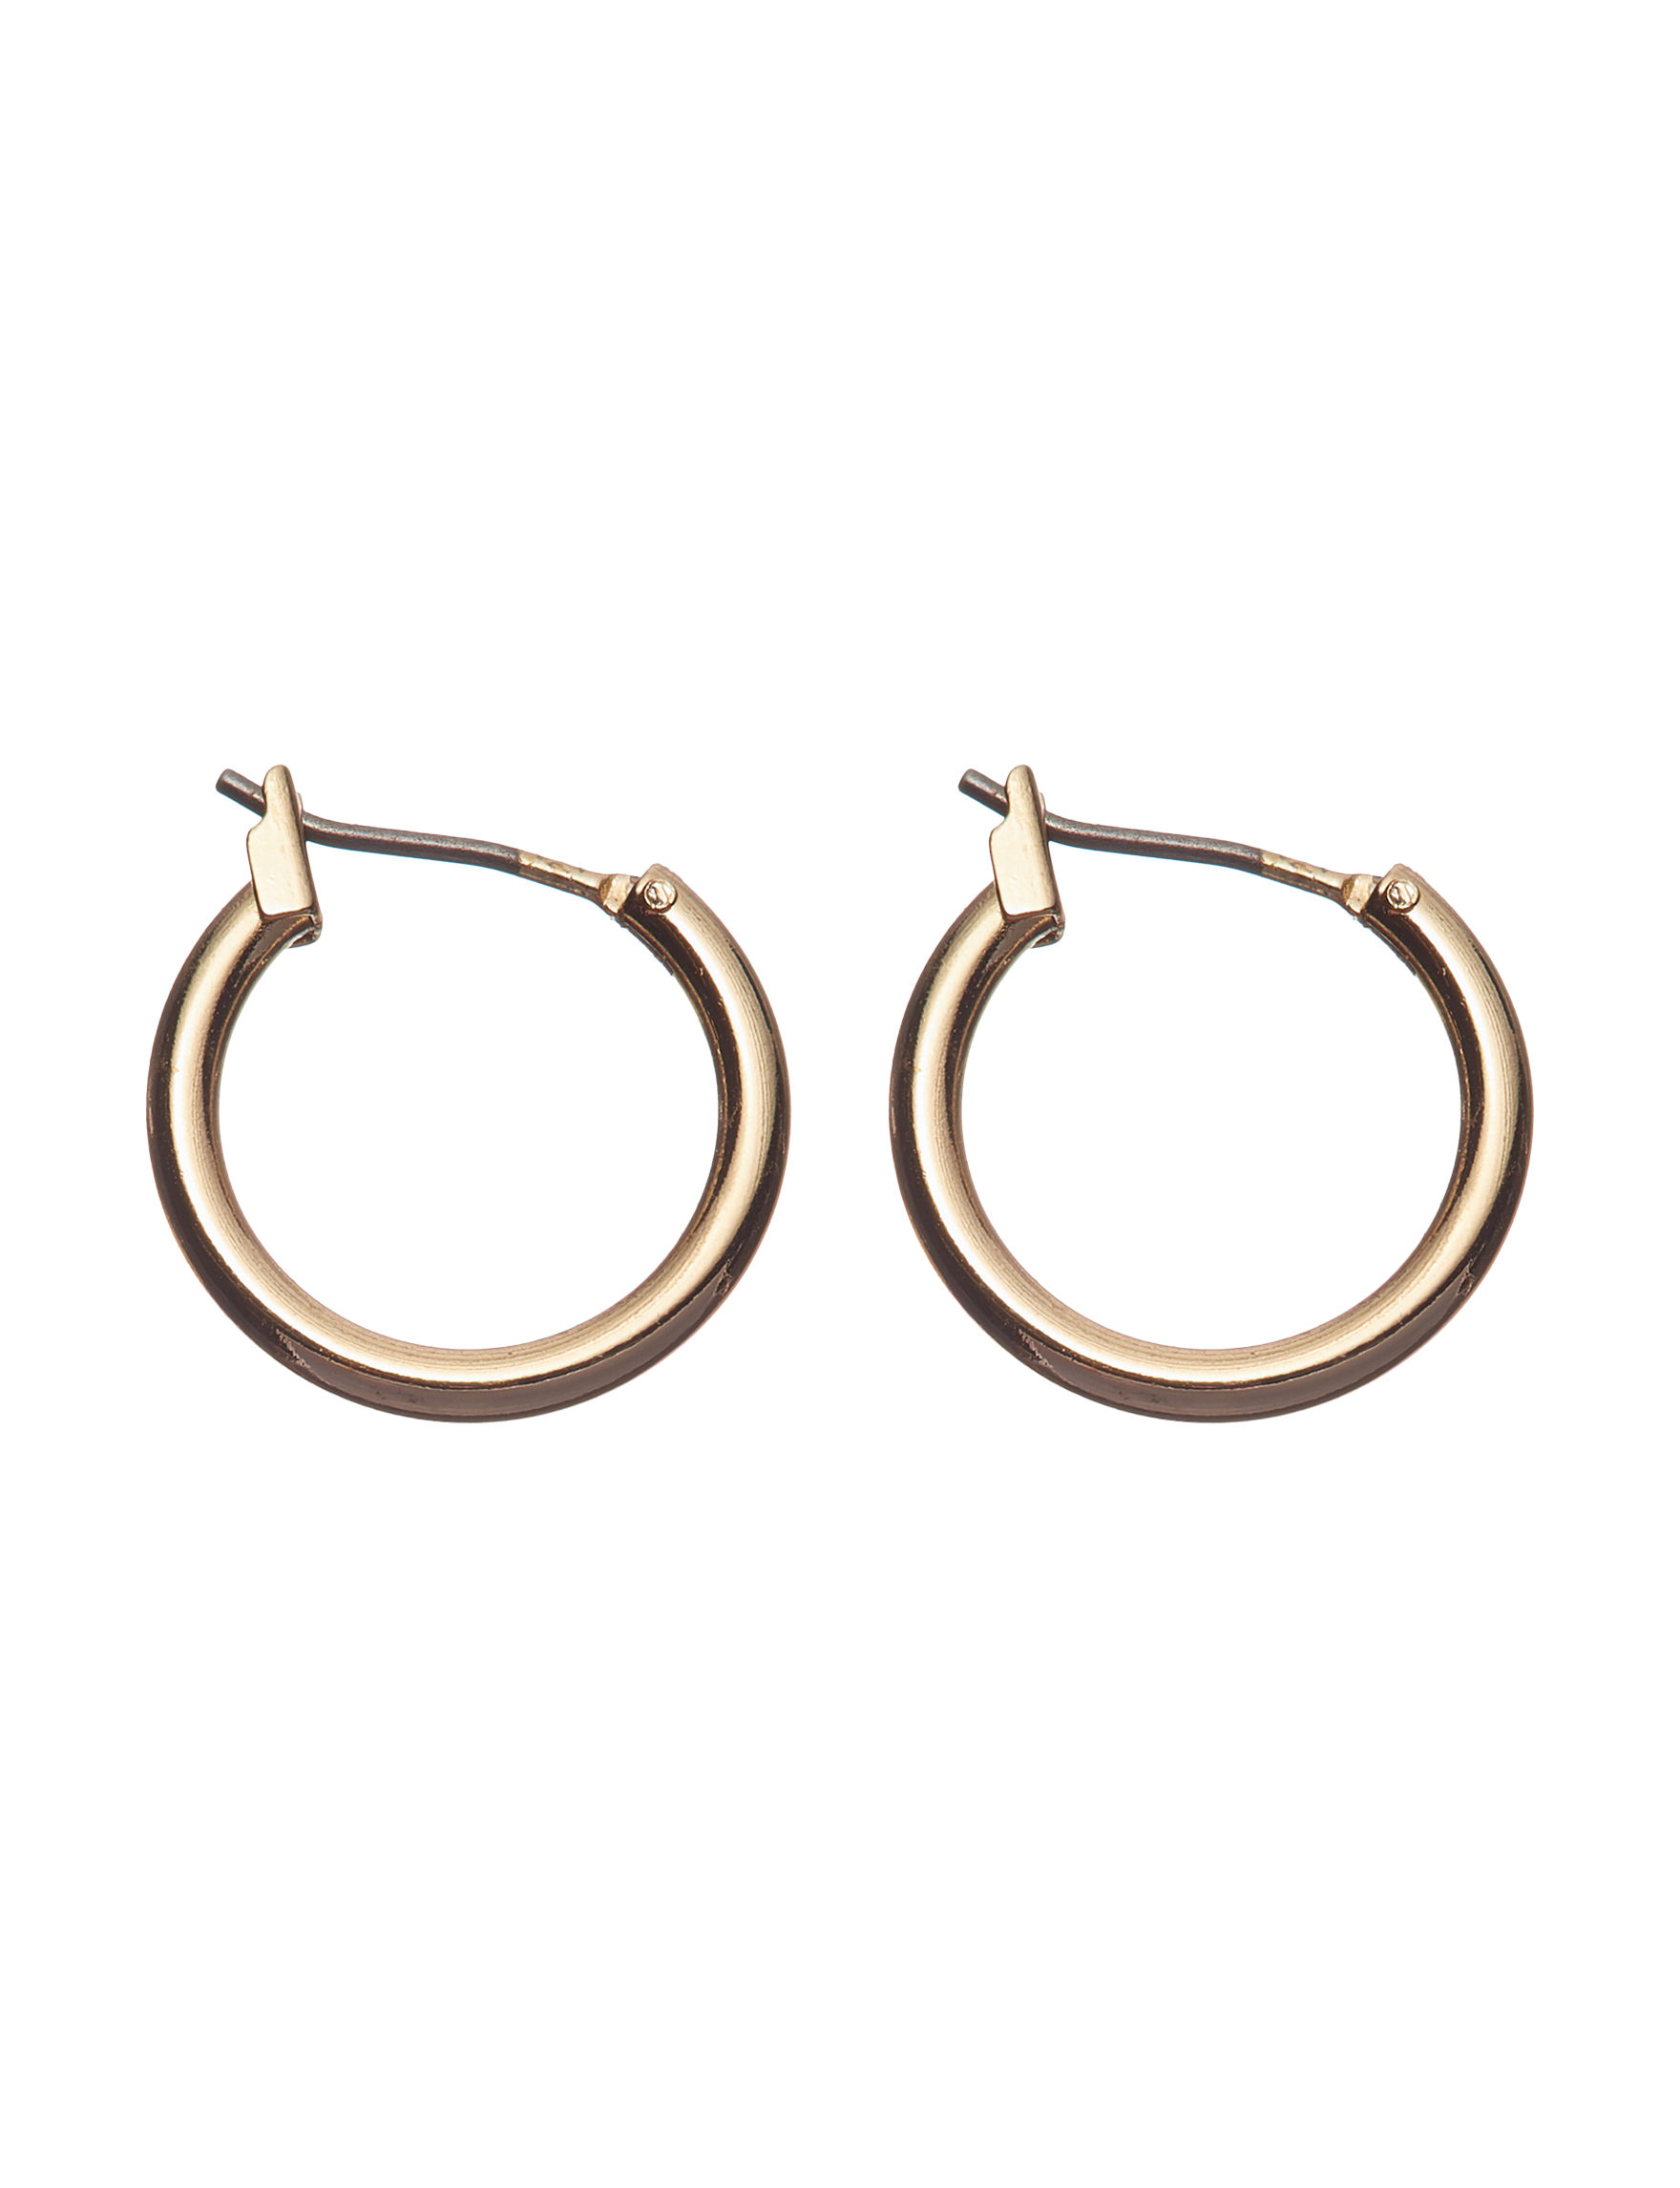 Napier Gold Hoops Earrings Fashion Jewelry